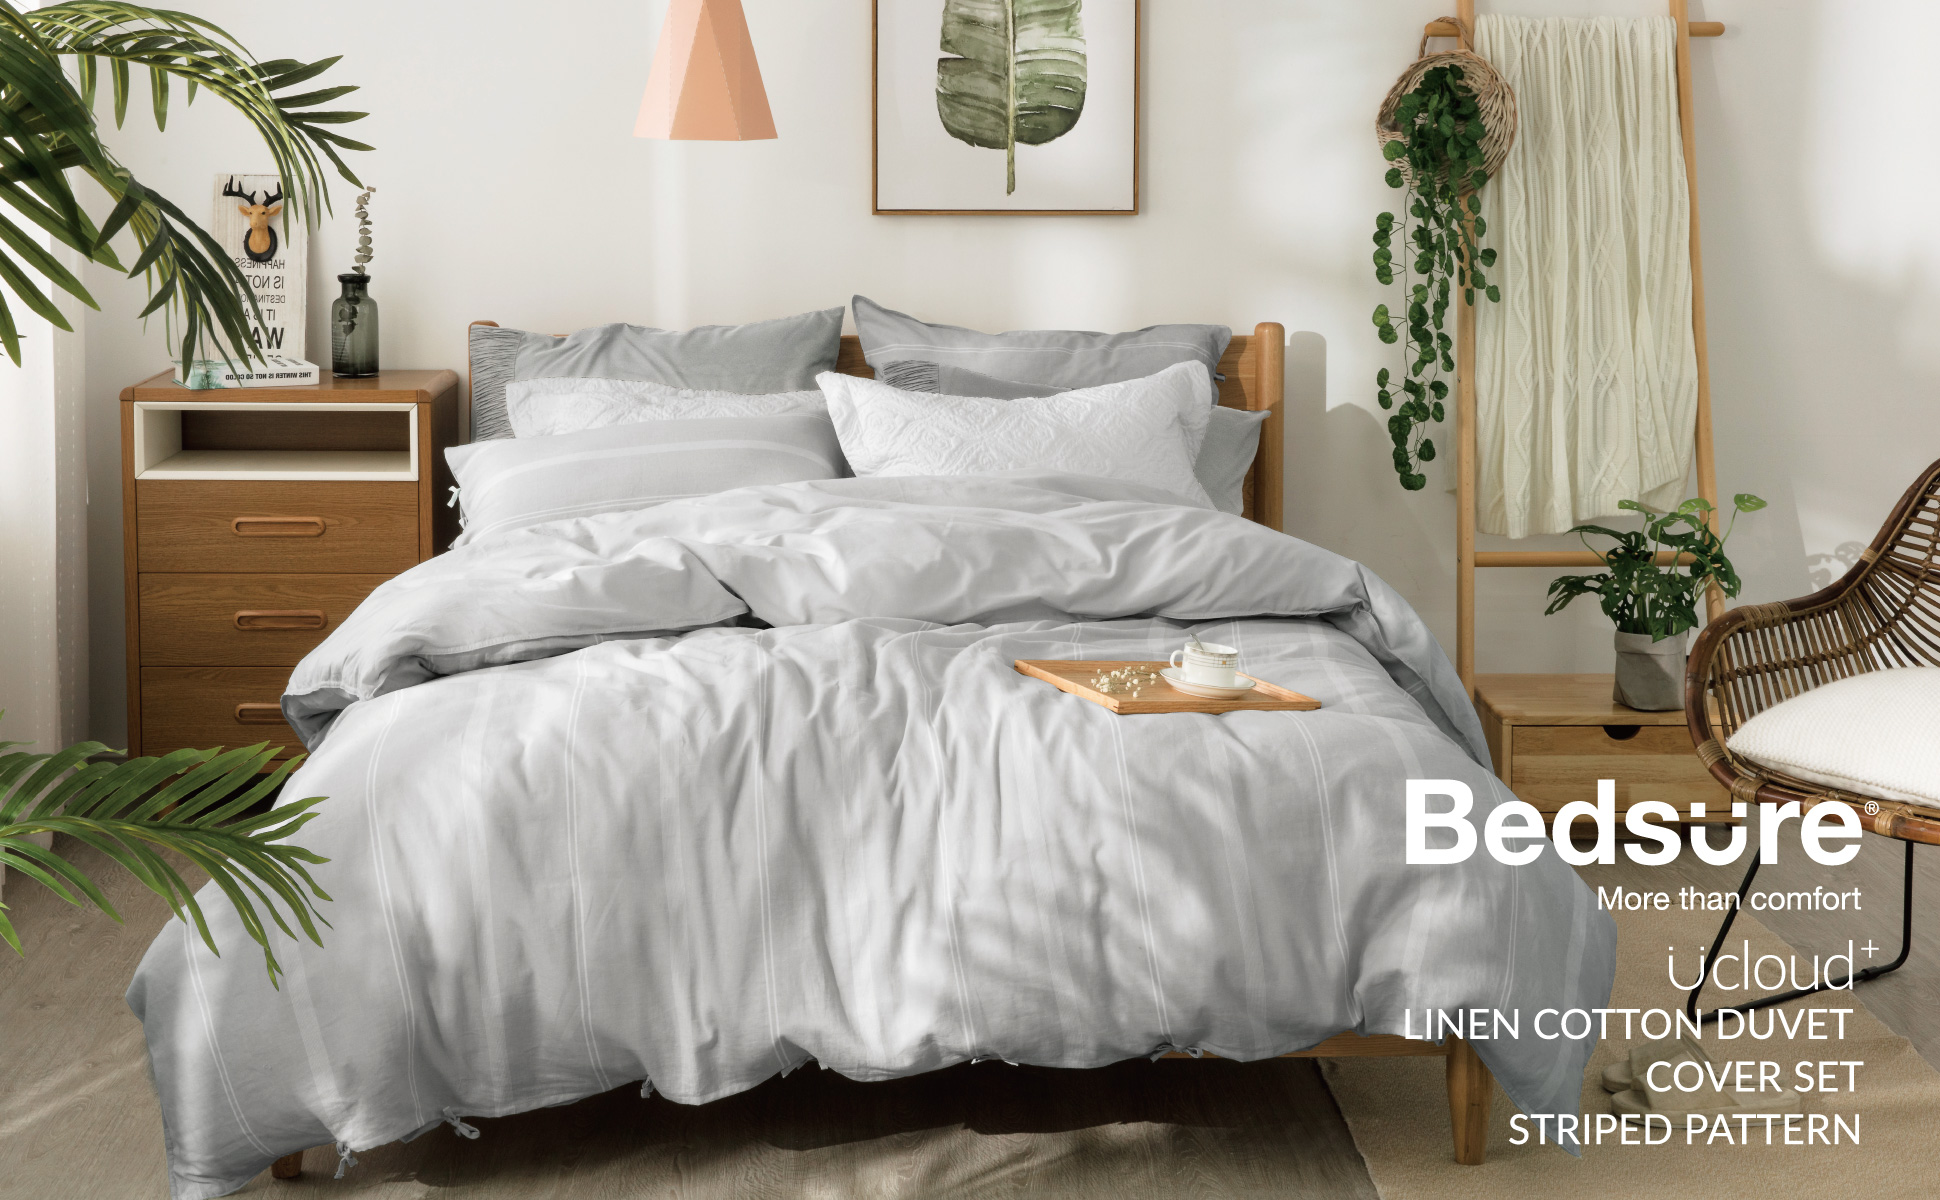 Luxury Bedding Available Direct from the Bedsure